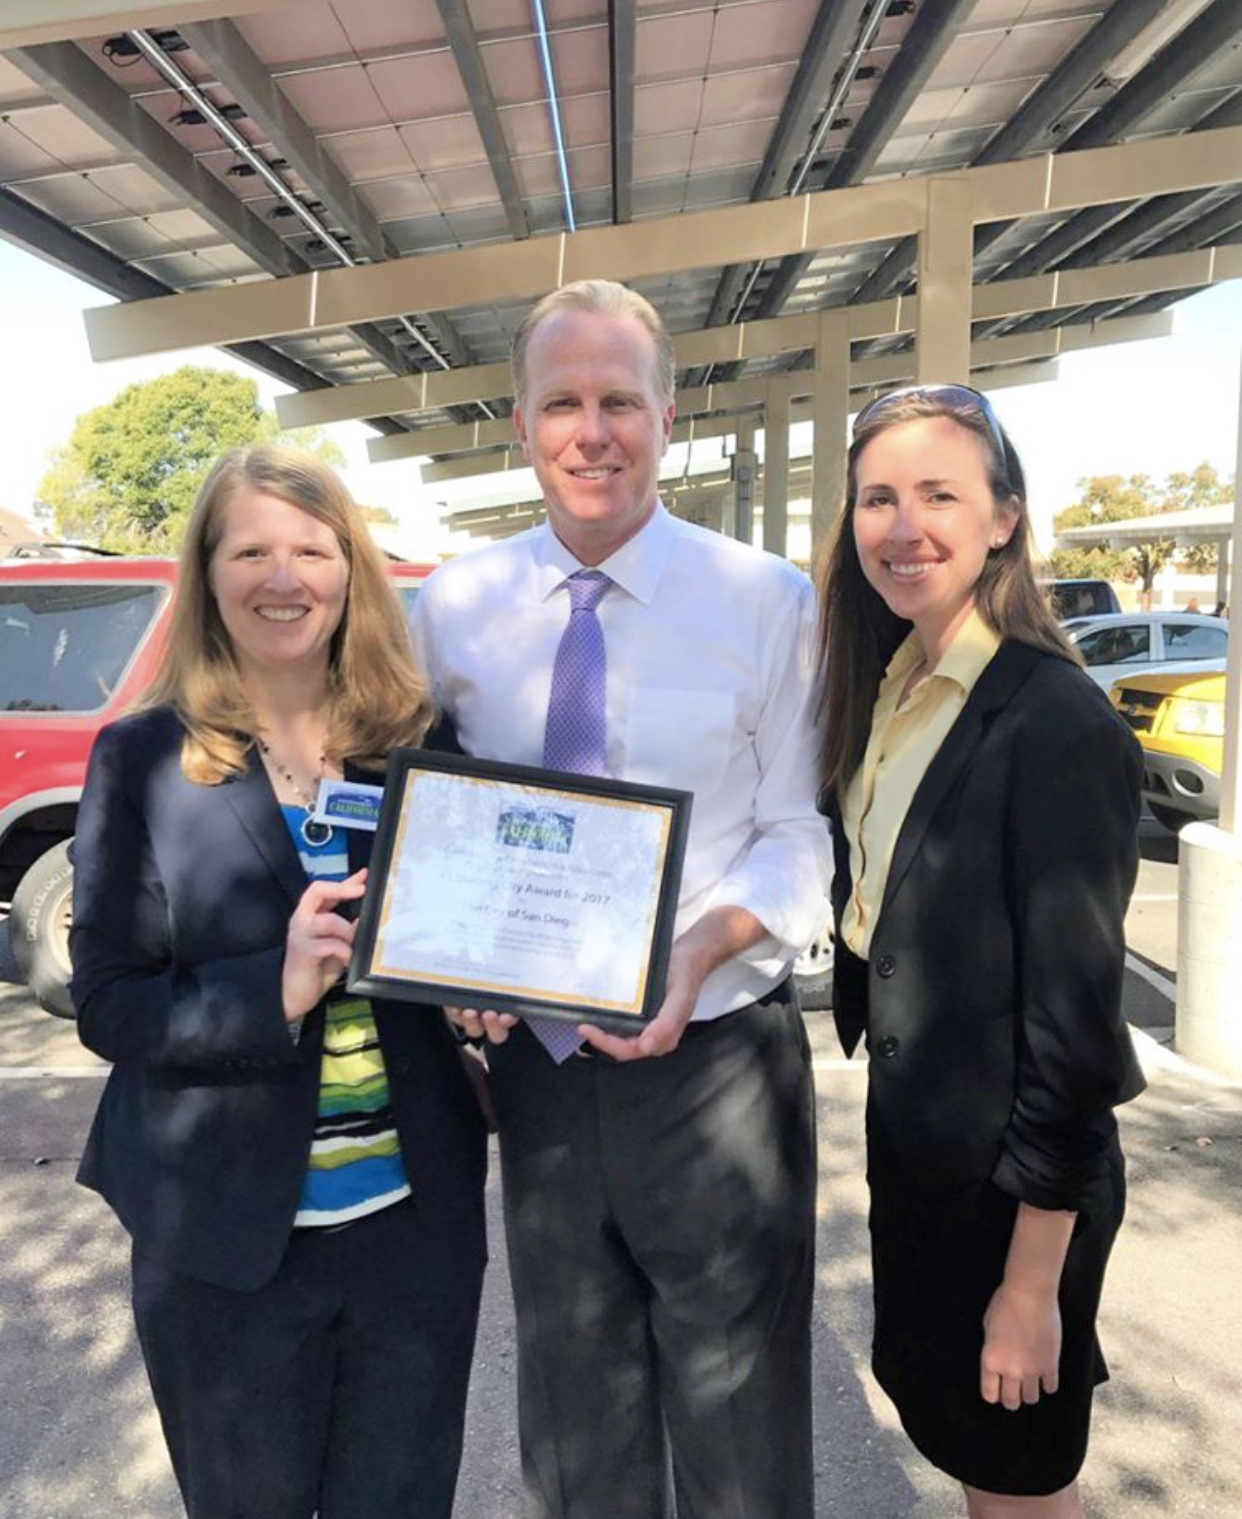 In 2017 Environment America named San Diego America's top solar city, and Michelle Kinman from Environment California presented San Diego Mayor Kevin Faulconer this recognition at a local press conference.